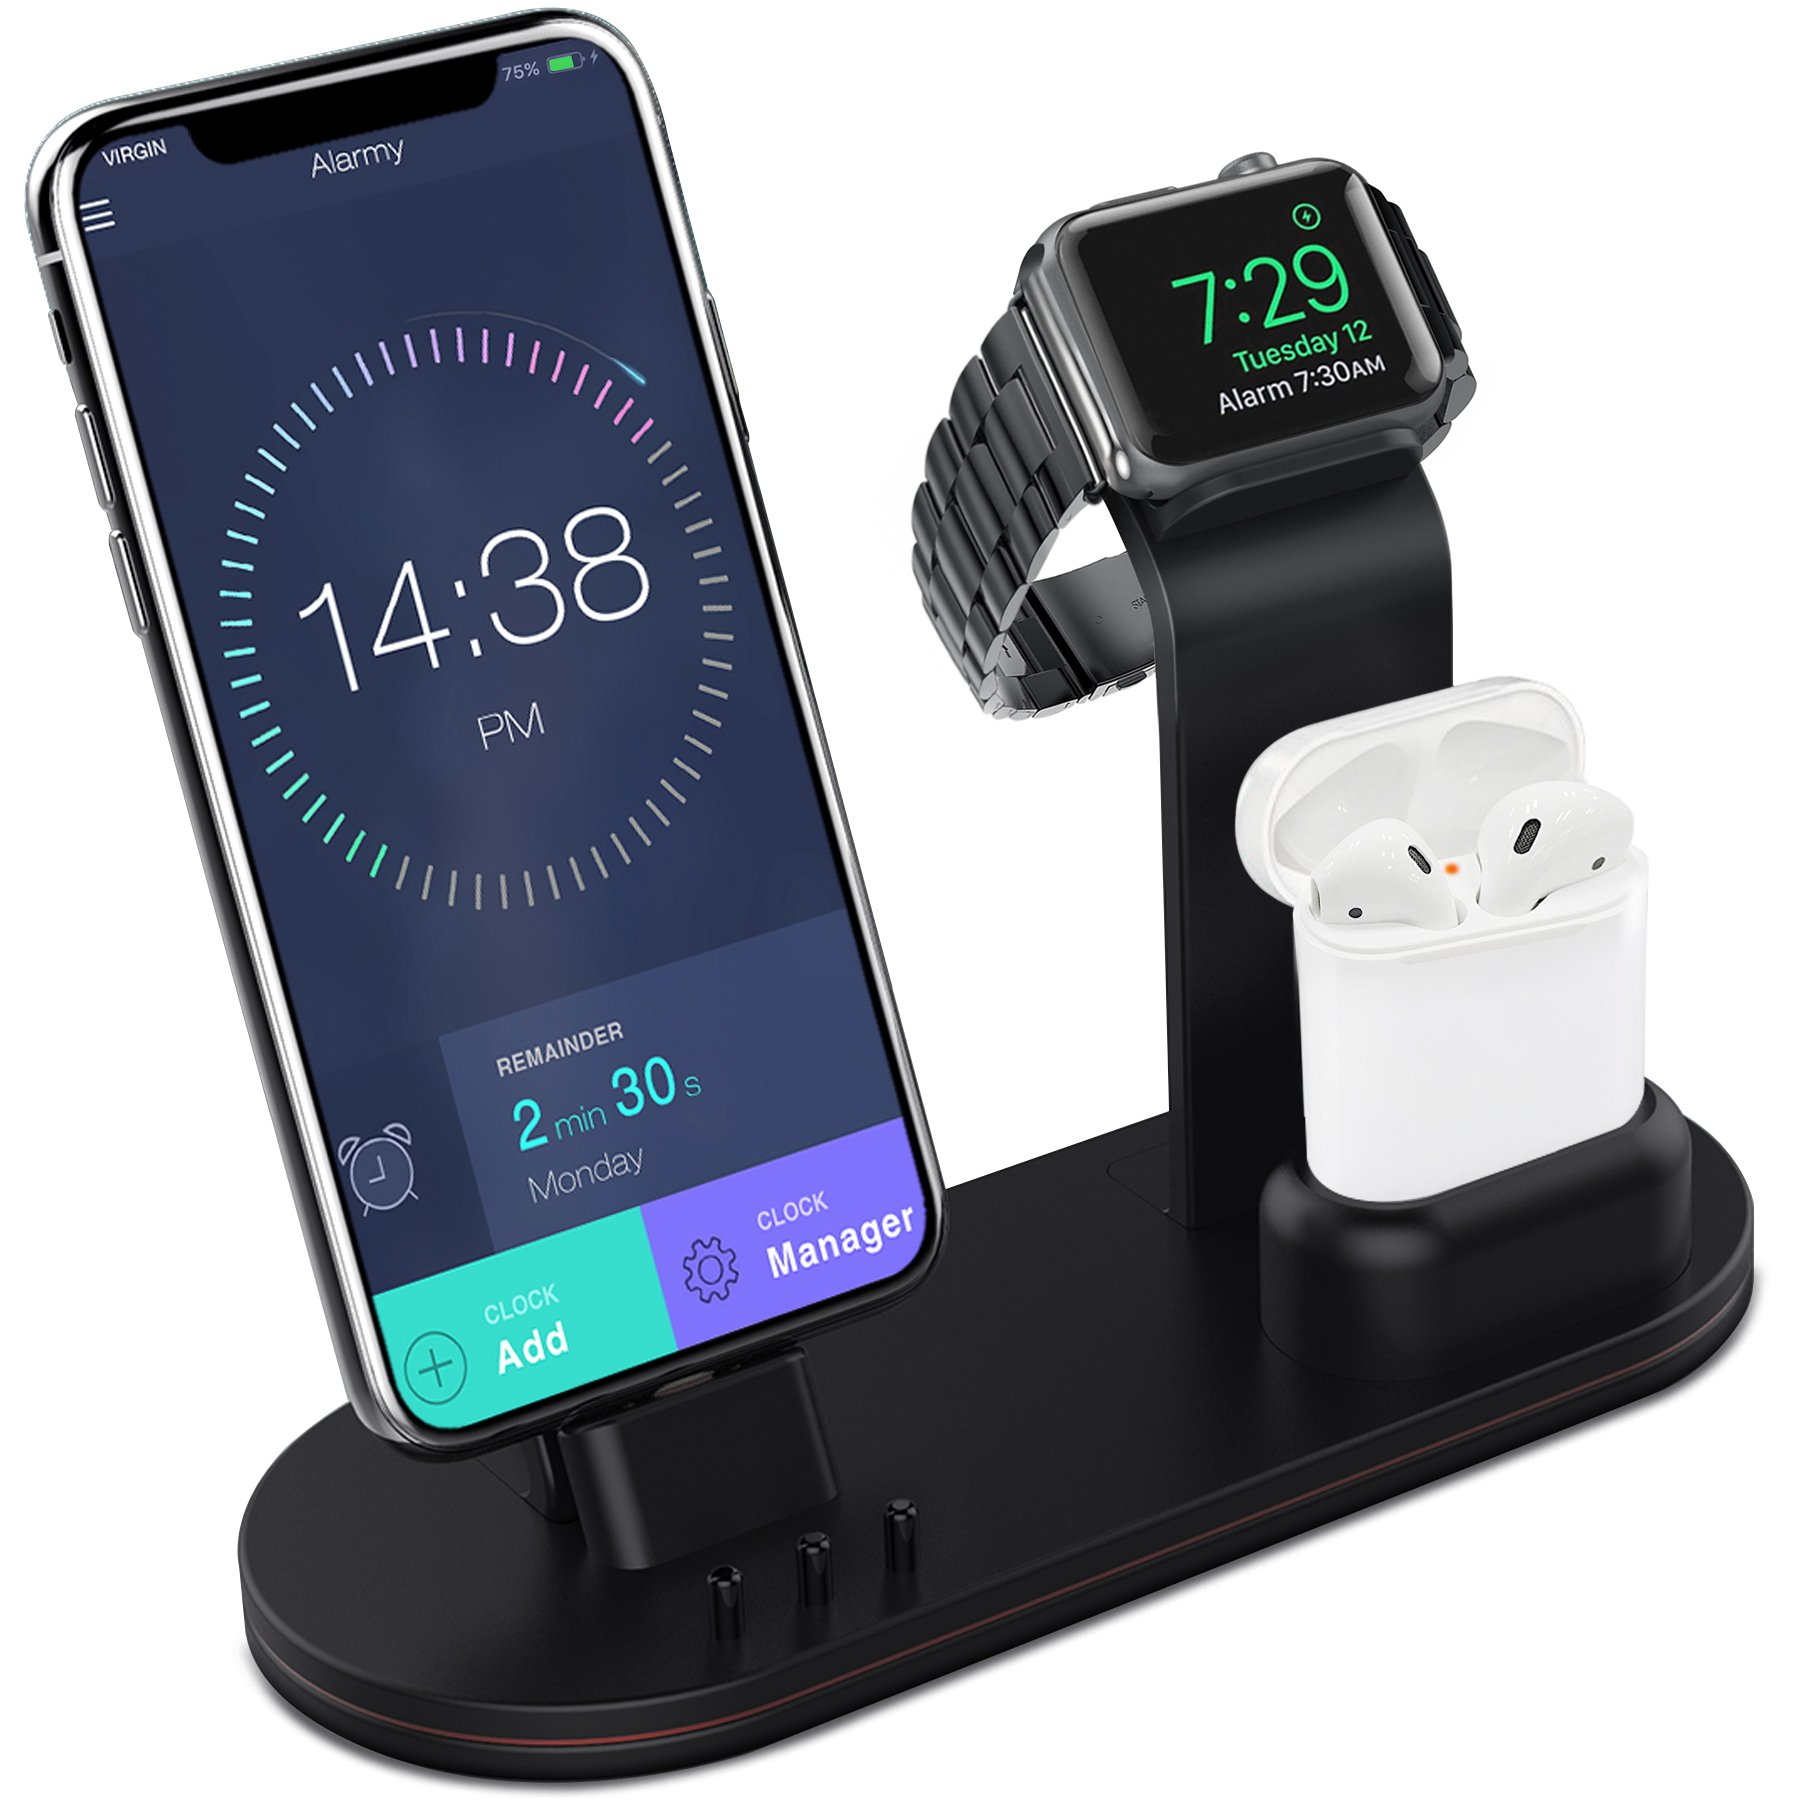 Apple Watch Stand Aluminum Apple Watch Charging Stand AirPods Stand Charging Docks Holder for Apple Watch Series 3/2/1/ AirPods/iPhone X/8/8Plus/7/7 Plus /6S /6S Plus/iPad-Black